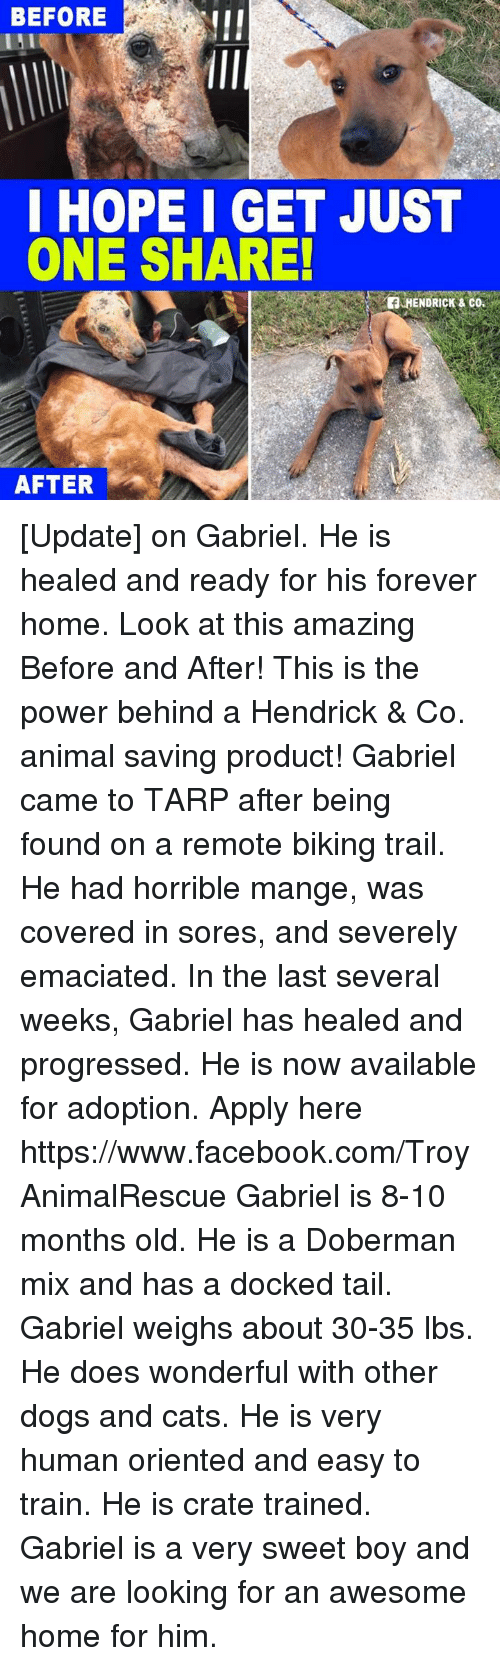 dog-and-cats: BEFORE  I HOPE I GET JUST  ONE SHARE!  HENDRICK & Co.  AFTER [Update] on Gabriel.  He is healed and ready for his forever home. Look at this amazing Before and After! This is the power behind a Hendrick & Co. animal saving product!   Gabriel came to TARP after being found on a remote biking trail. He had horrible mange, was covered in sores, and severely emaciated. In the last several weeks, Gabriel has healed and progressed.  He is now available for adoption. Apply here https://www.facebook.com/TroyAnimalRescue Gabriel is 8-10 months old. He is a Doberman mix and has a docked tail. Gabriel weighs about 30-35 lbs. He does wonderful with other dogs and cats. He is very human oriented and easy to train. He is crate trained. Gabriel is a very sweet boy and we are looking for an awesome home for him.